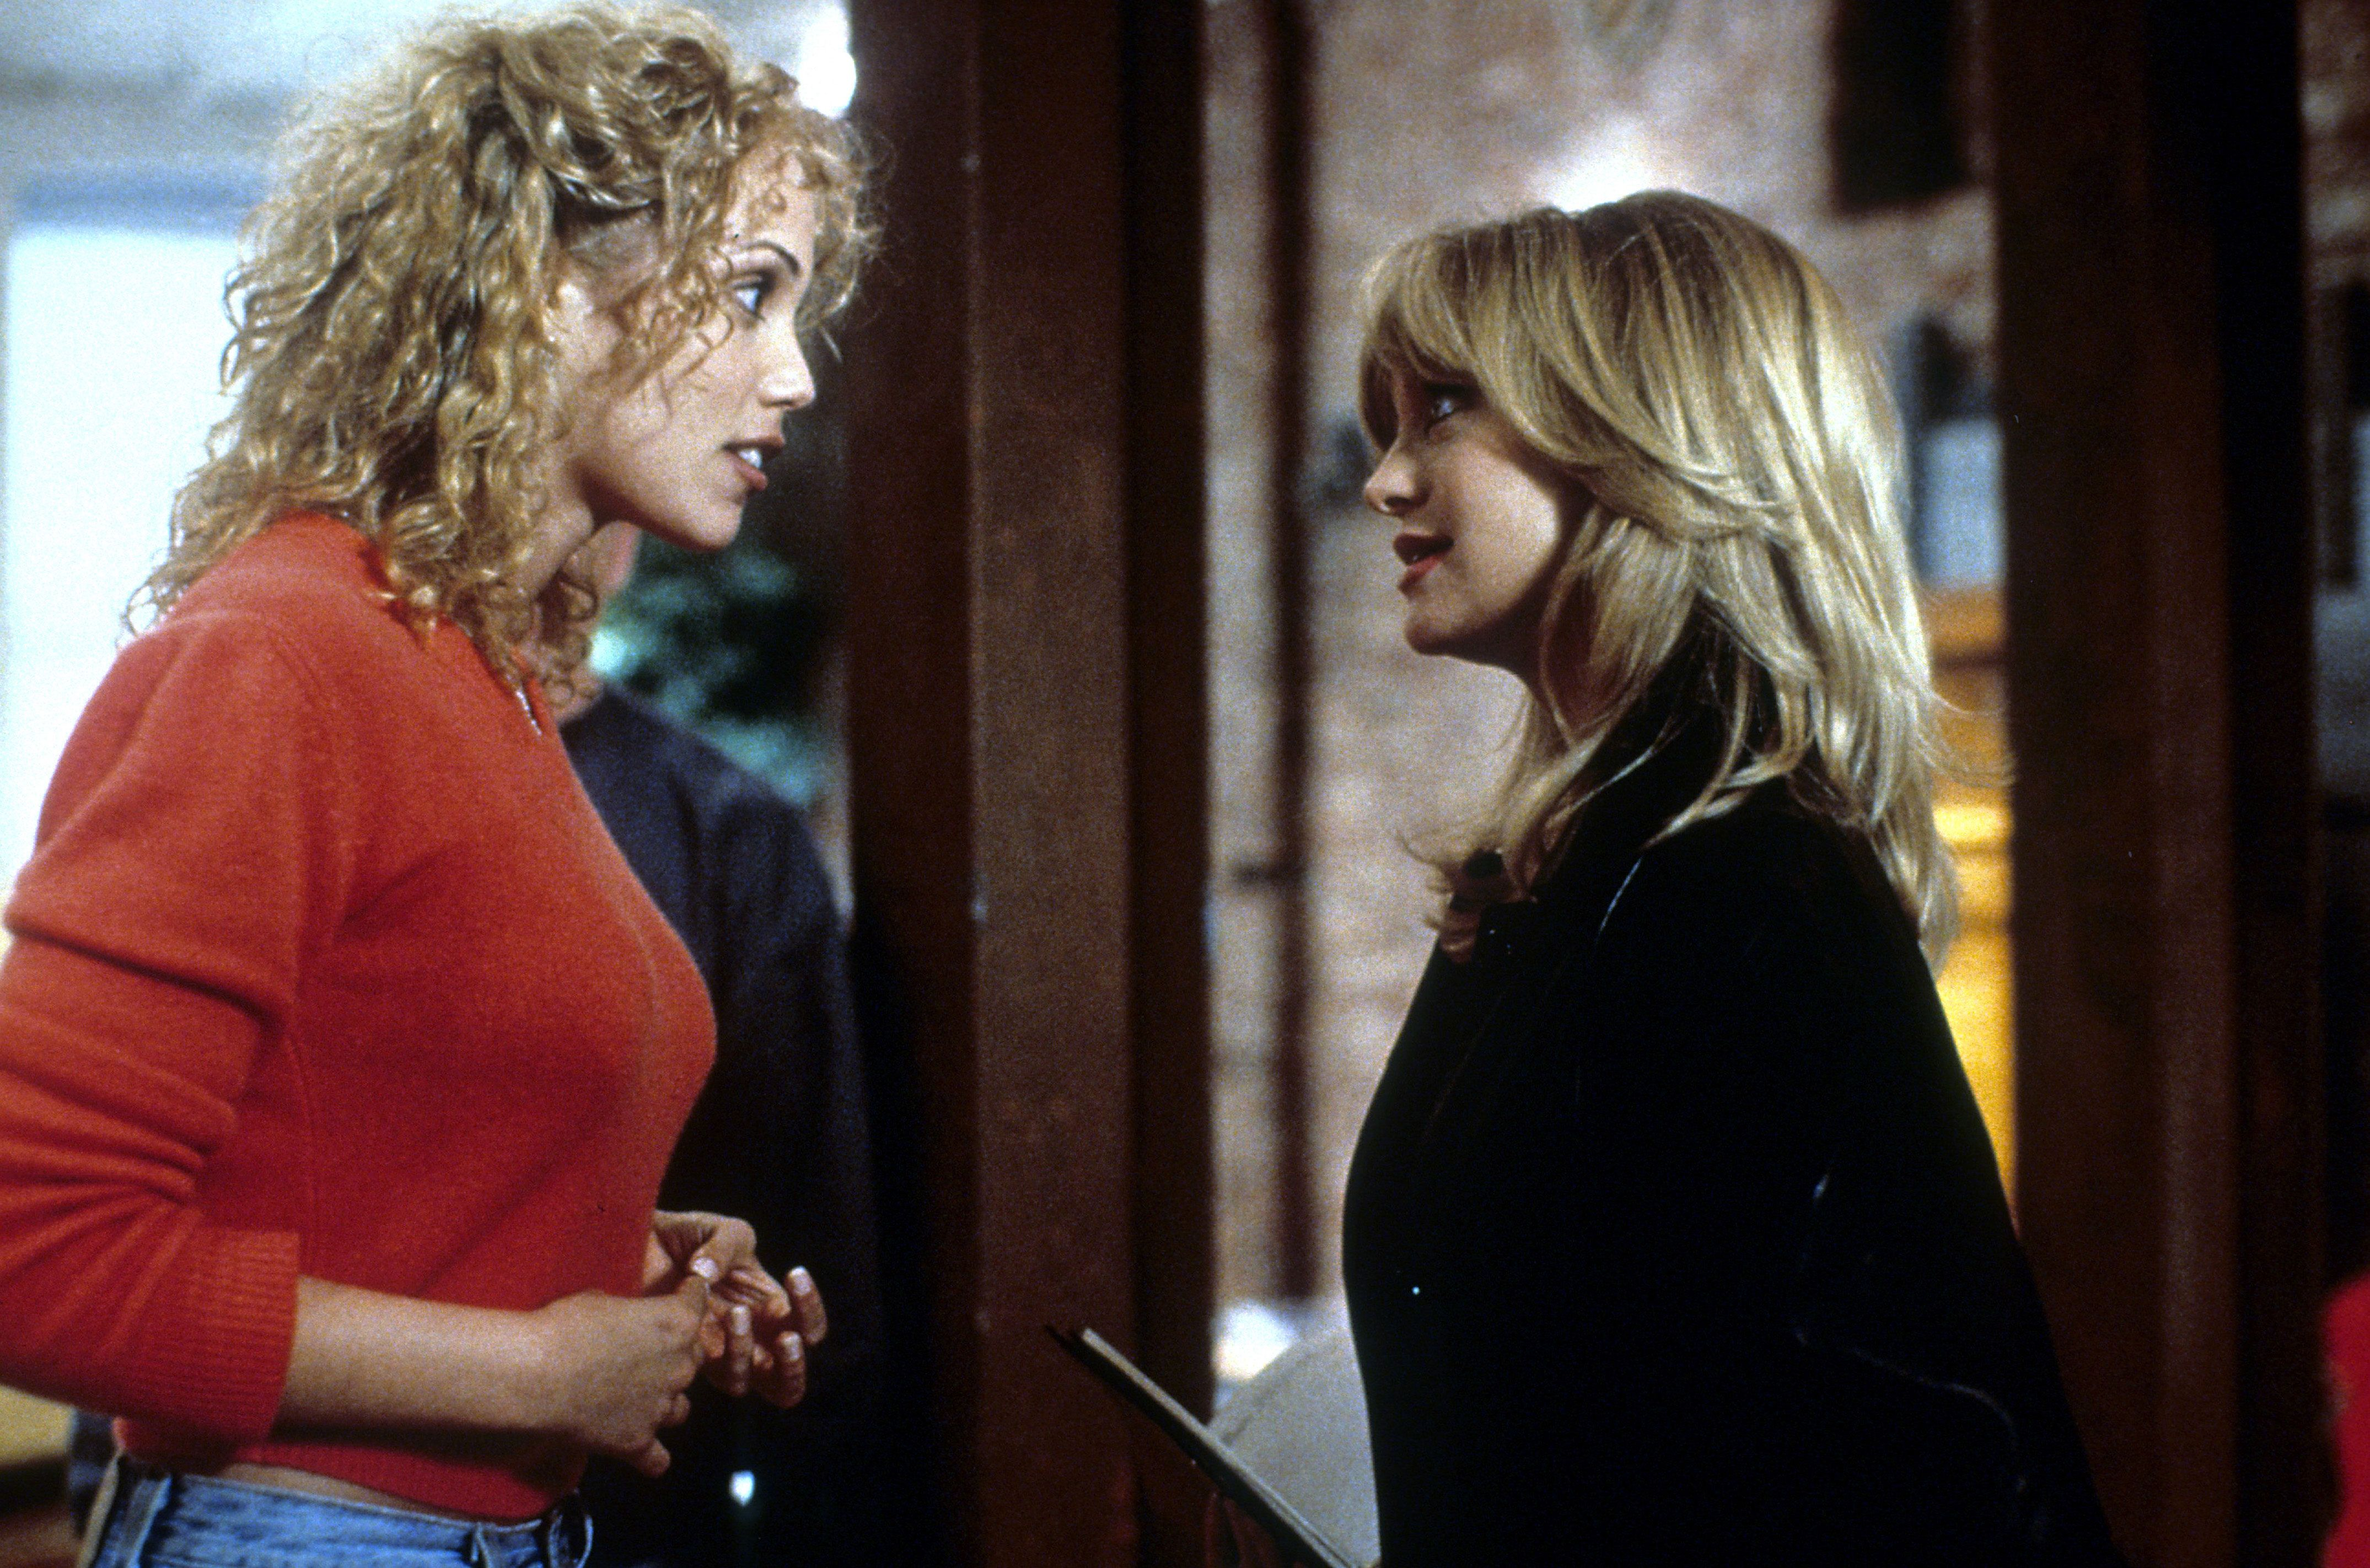 28 Greatest Goldie Hawn Movies, Ranked From Best to Worst